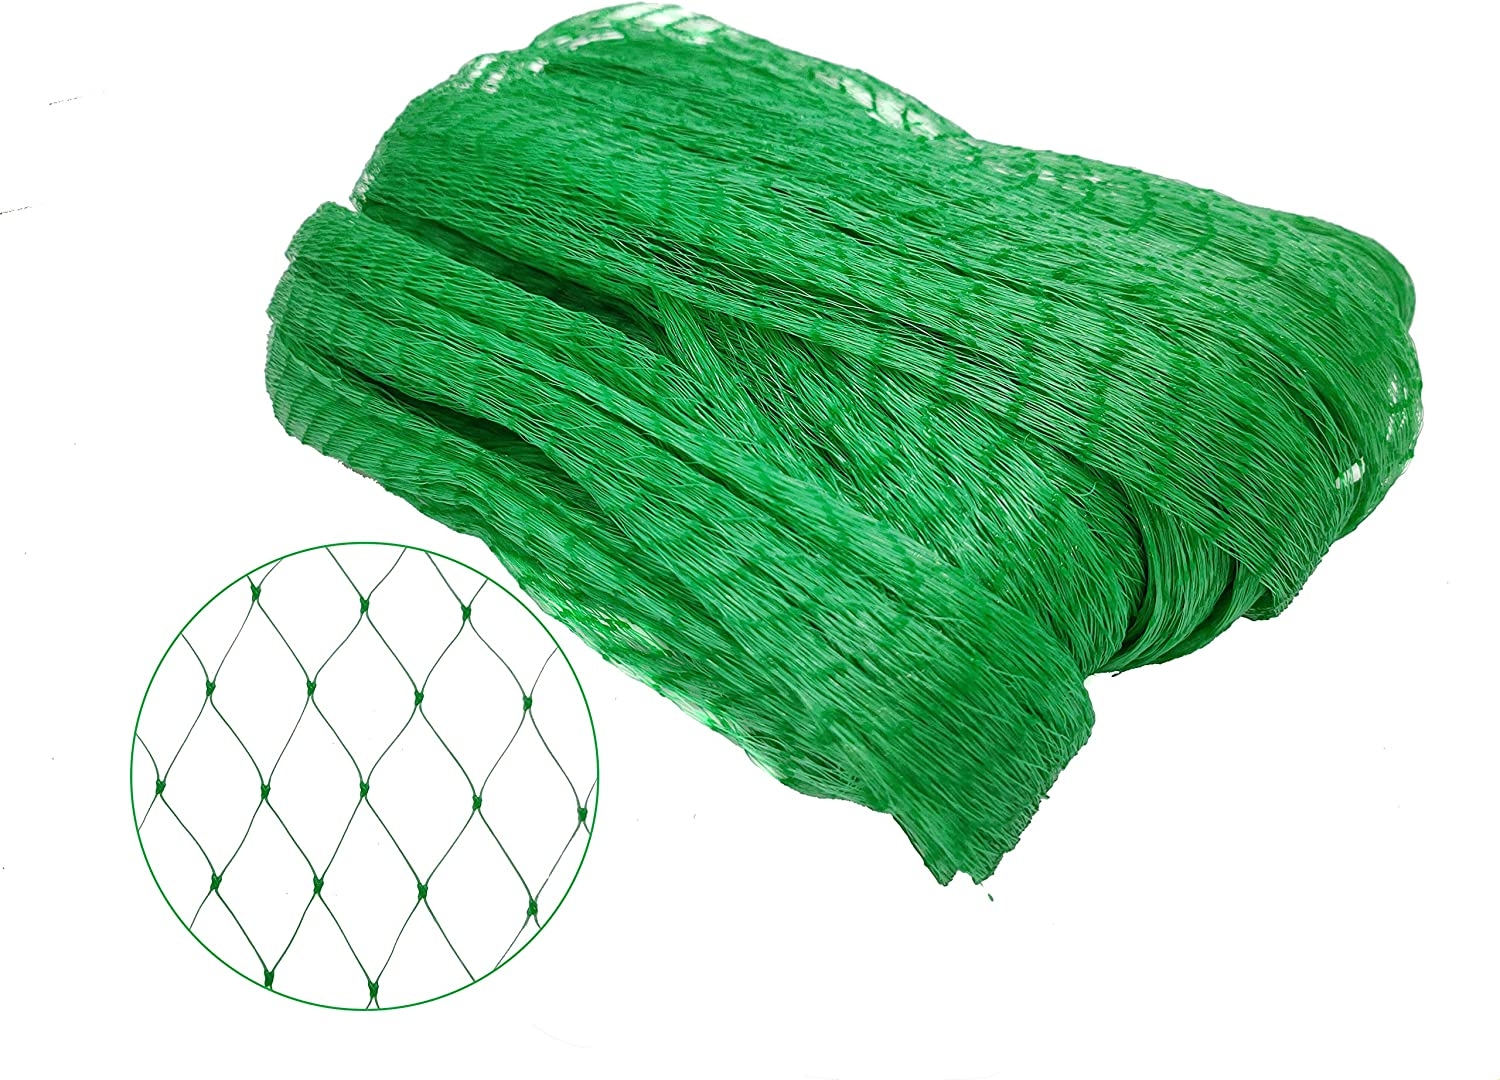 MM&HH Garden Bird Netting, Protect Fruits, Vegetables and Flowers from Animals' Attack , Pond Cover, 13x50ft with 100 PCS of Zip Green Ties